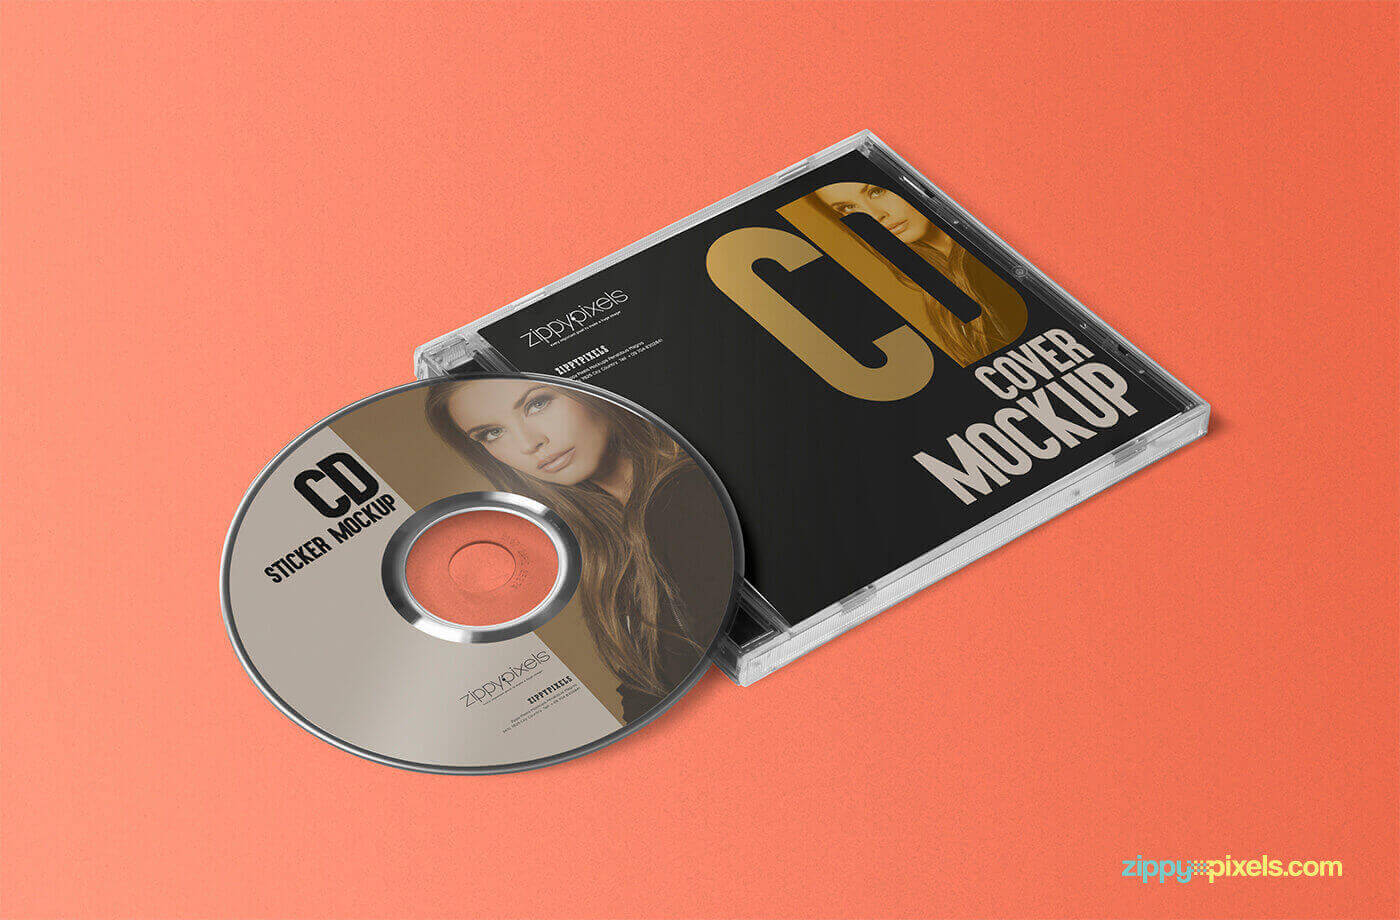 CD Sticker Mockup